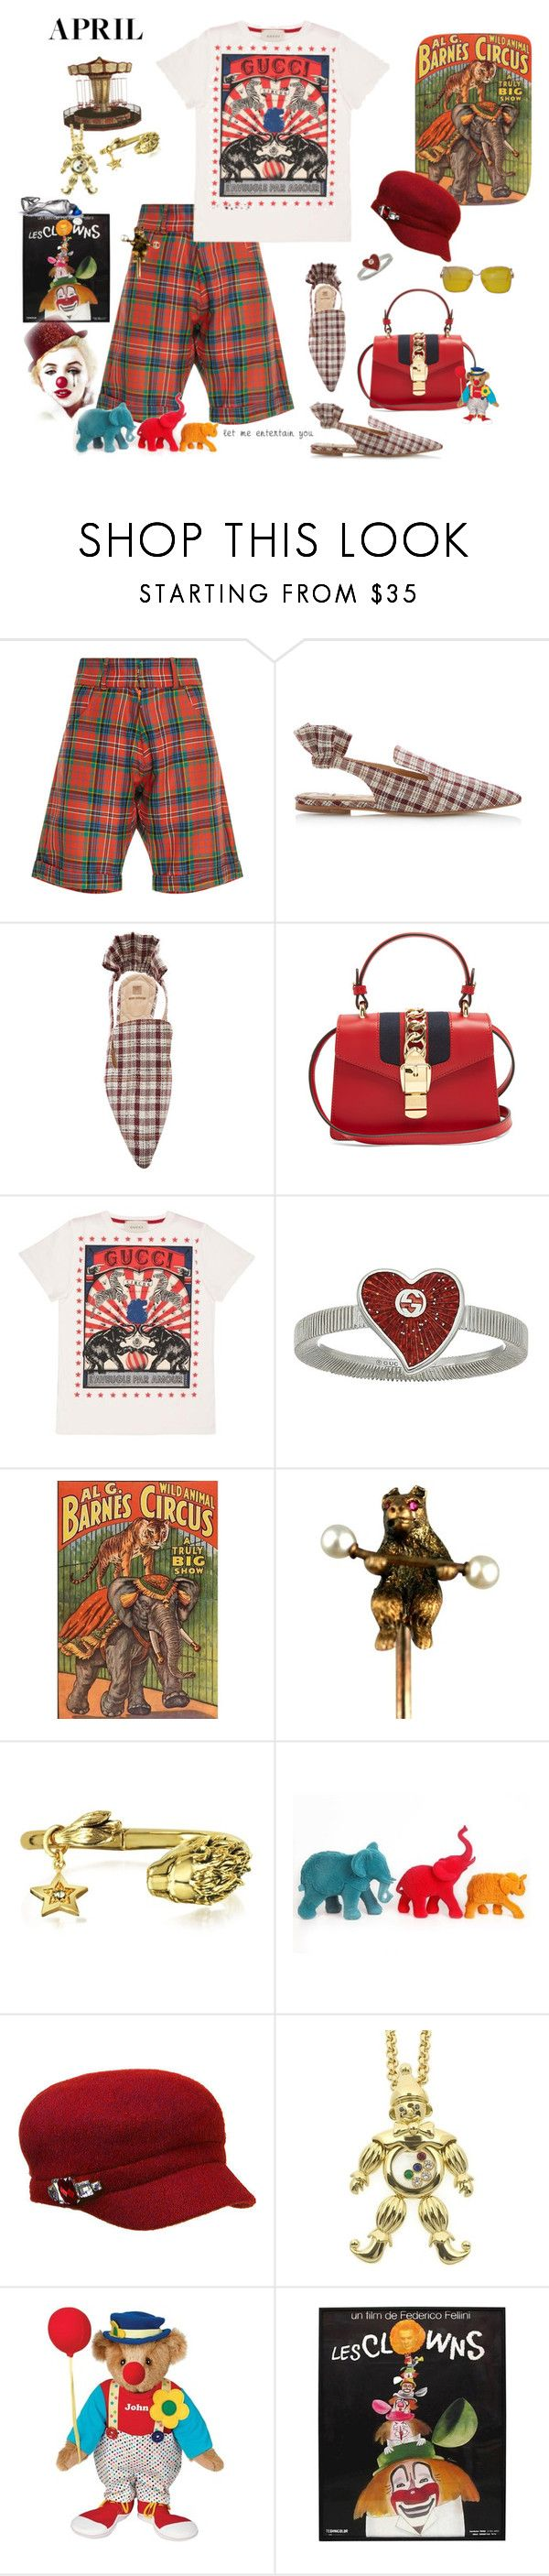 """April- Fashion Fool"" by juliabachmann ❤ liked on Polyvore featuring Tata Naka, Rosie Assoulin, Gucci, Roberto Cavalli, Temerity Jones, Betmar and Chopard"